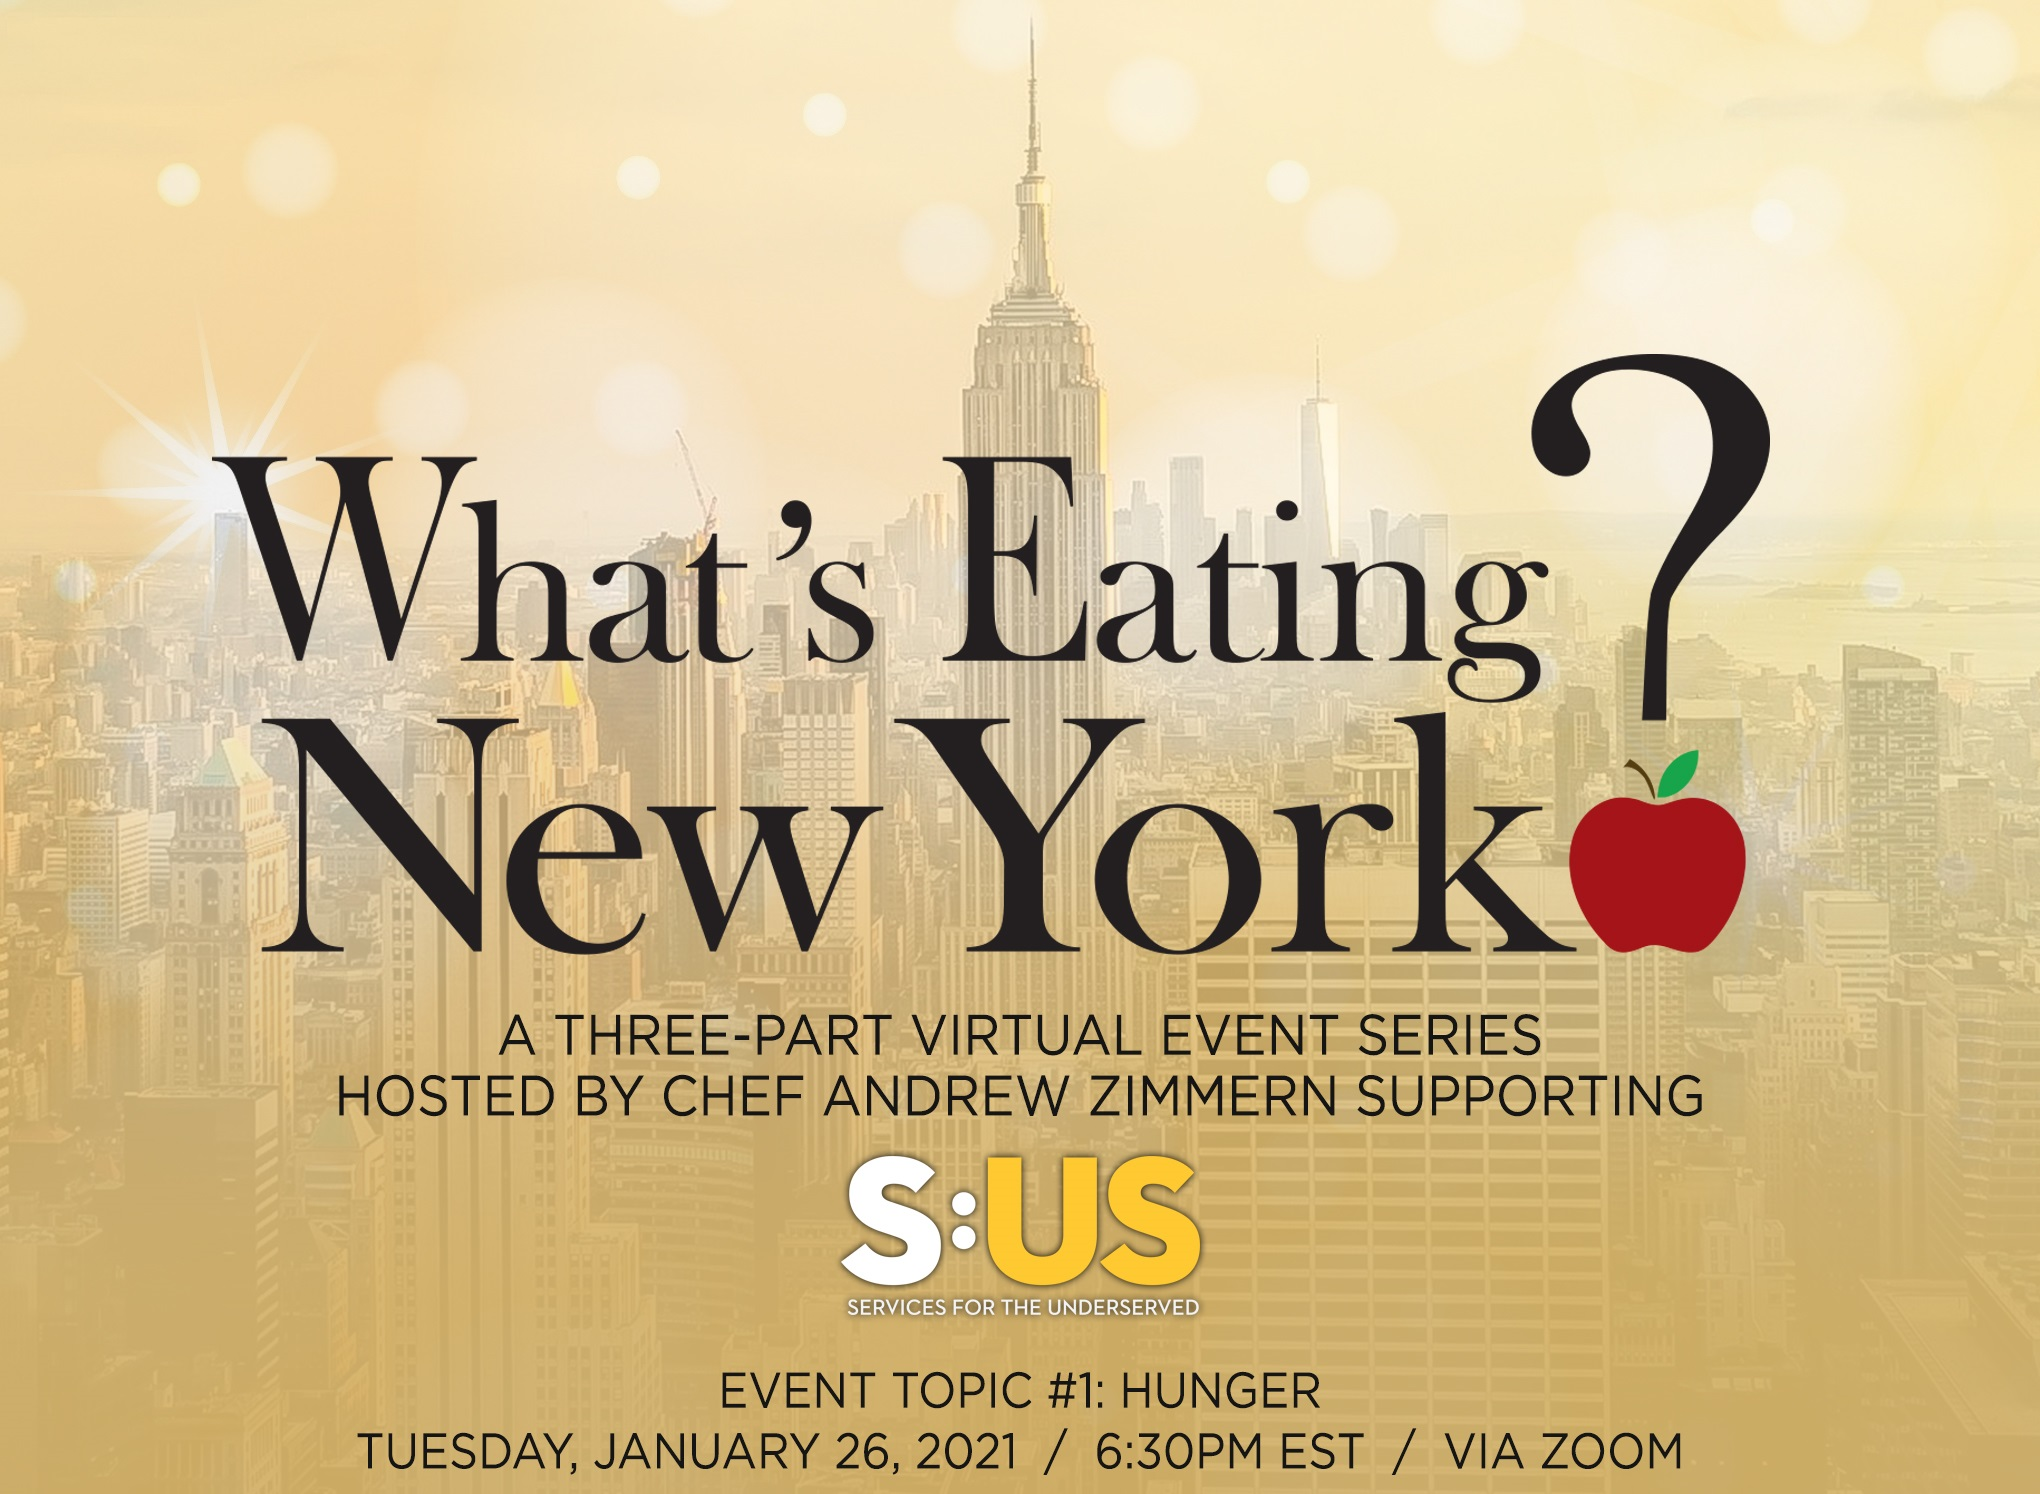 Join us for our first virtual event on Tuesday, January 26, 2021 at 6:30pm EST